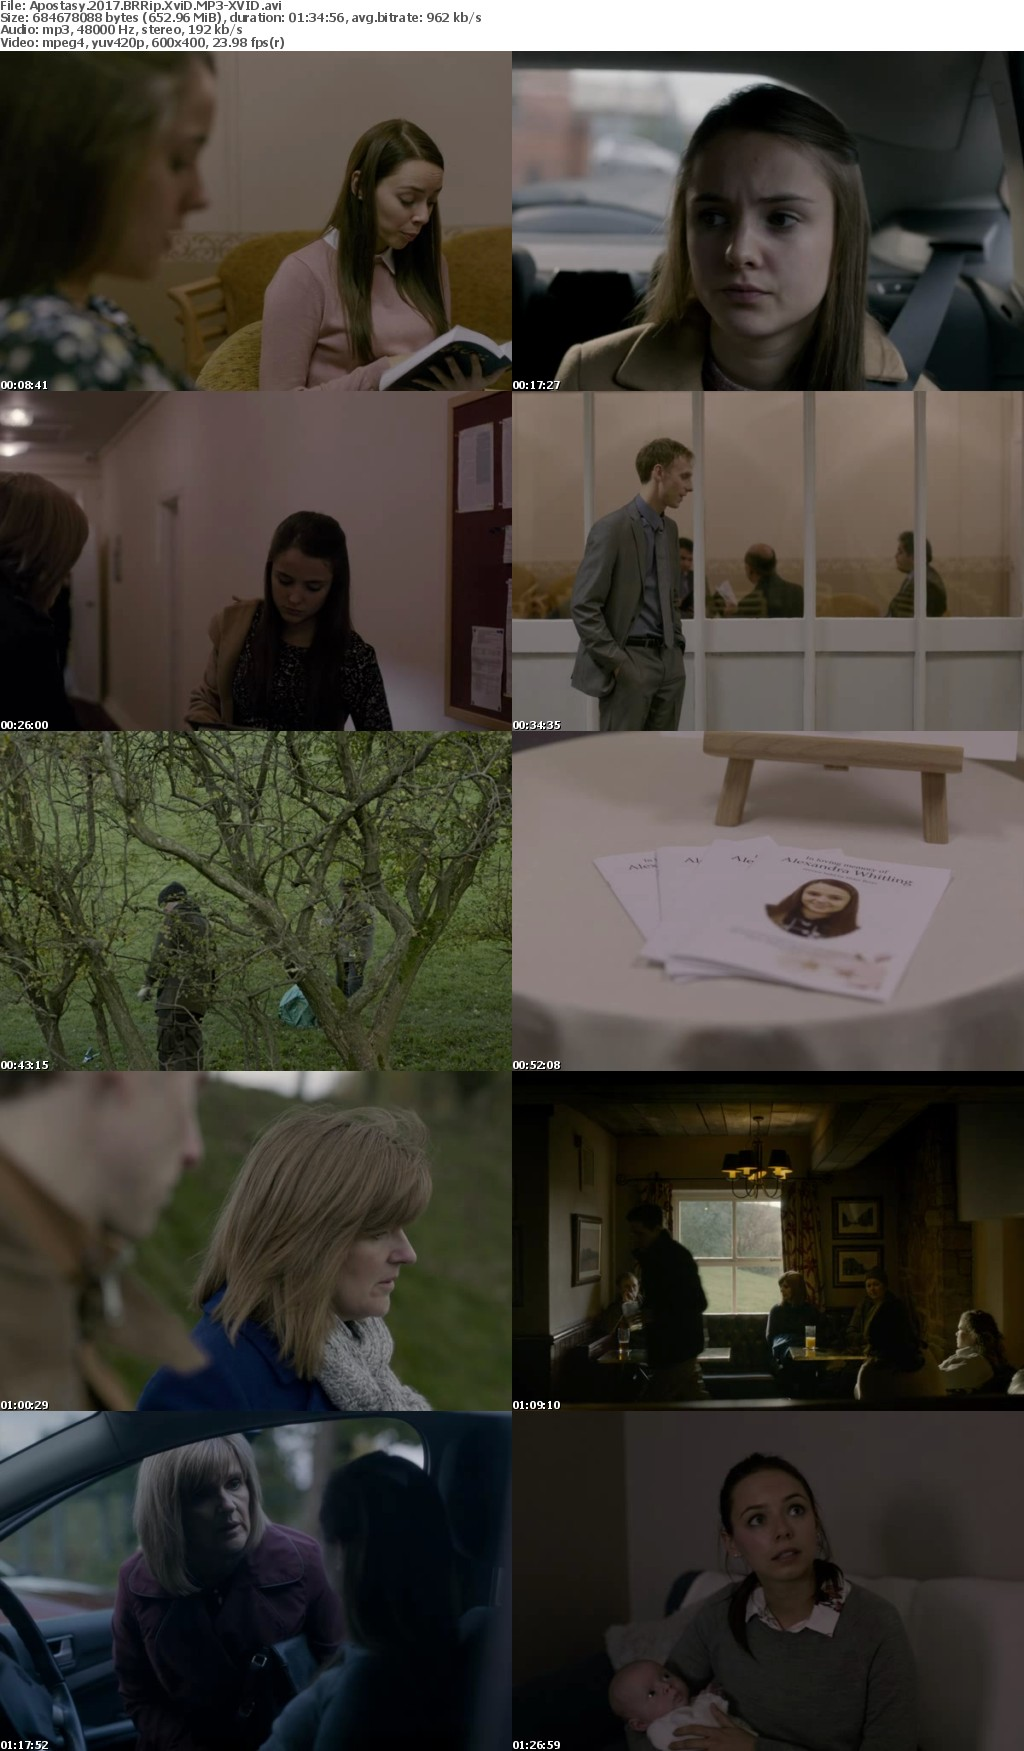 Apostasy 2017 BRRip XviD MP3-XVID